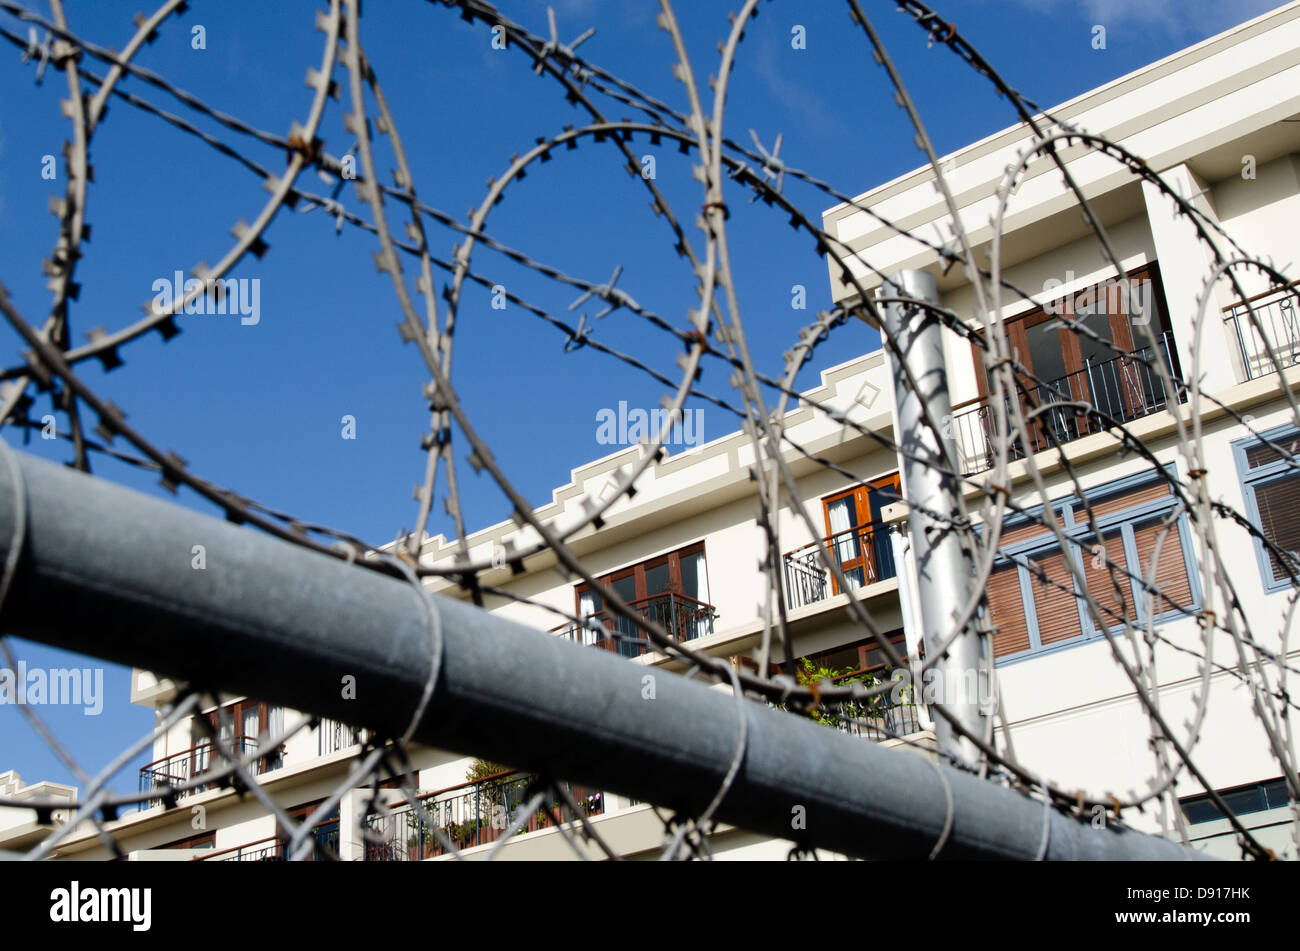 A wealthy, upscale neighborhood community with very rich people behind a protection bar wire fence. - Stock Image